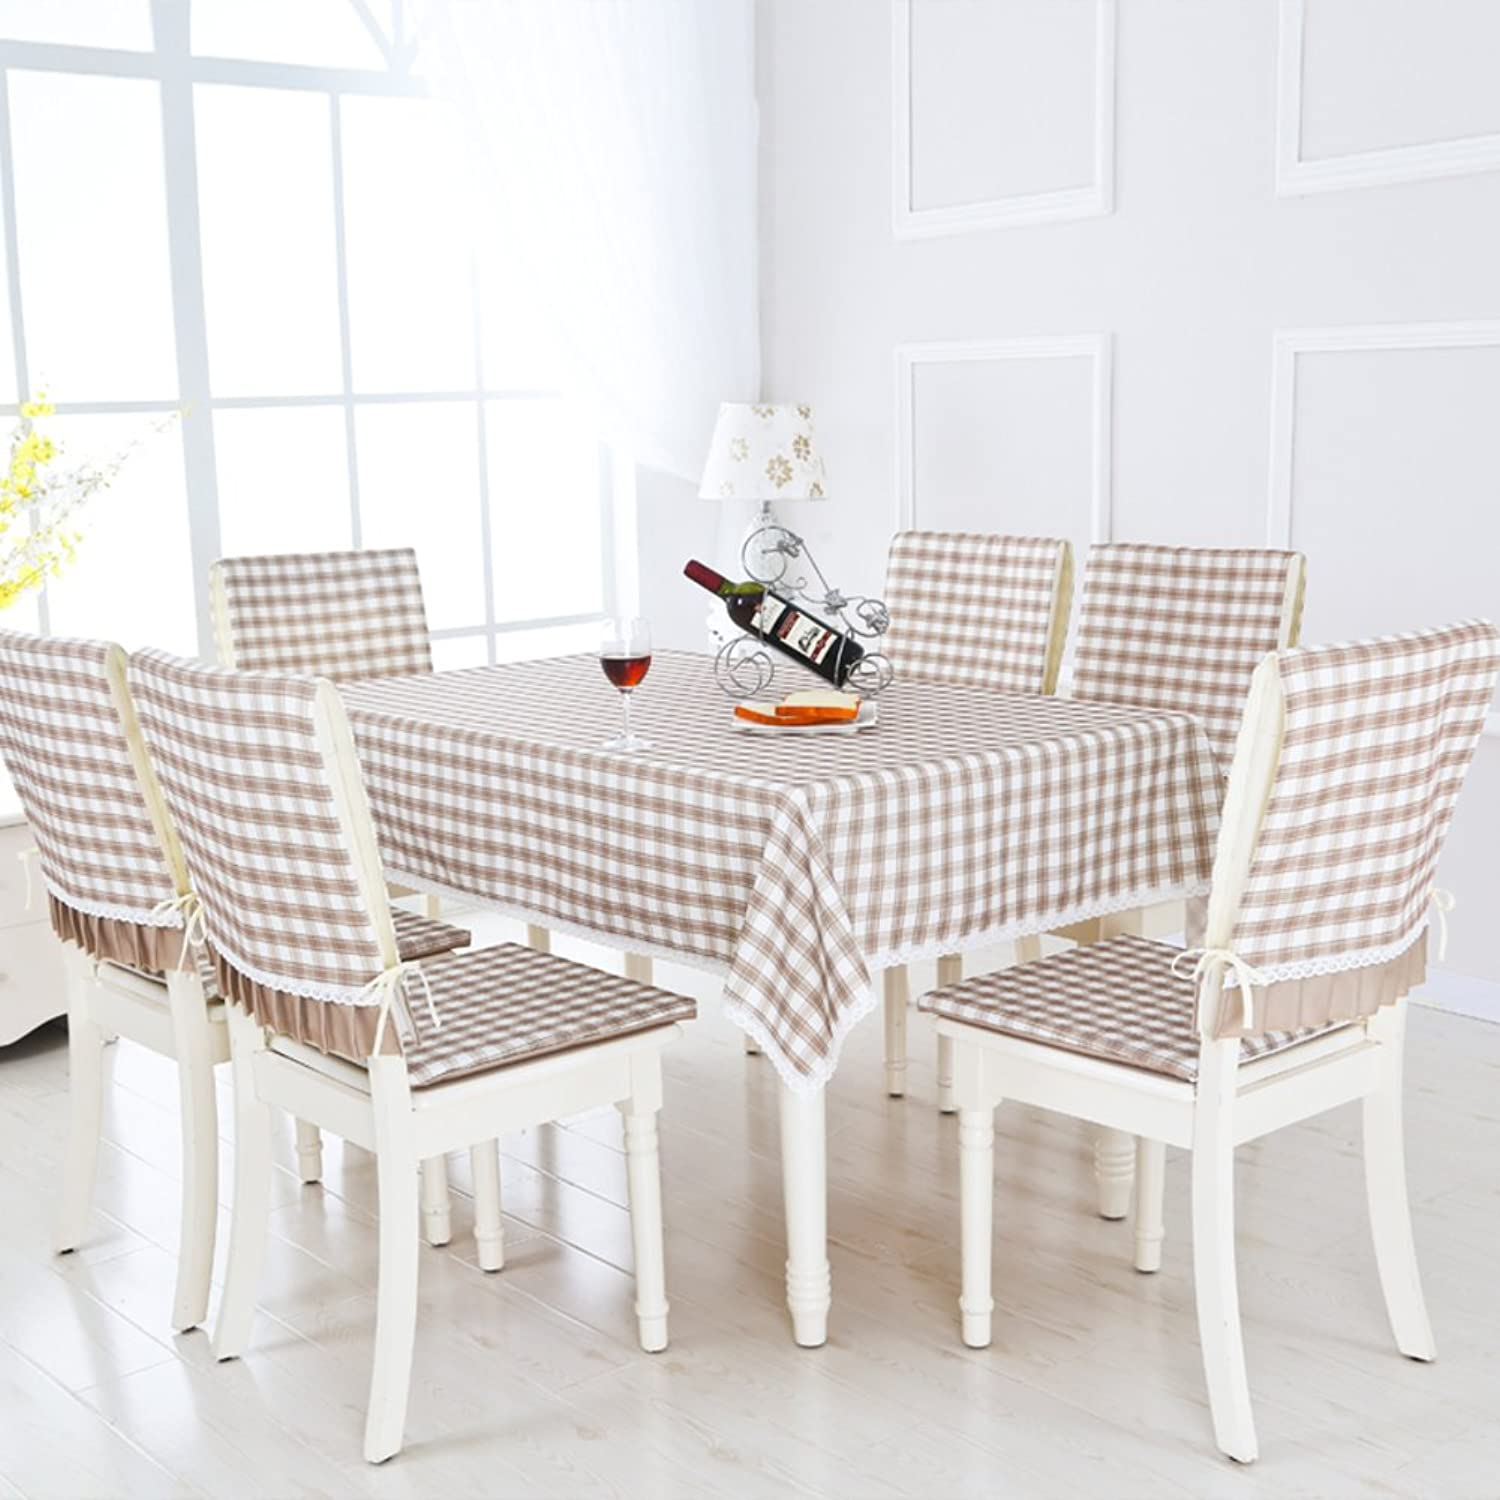 Lattice antiOil tablecloth dining room table linen table covers for home hotel cafe restaurantB Circle(150150cm)